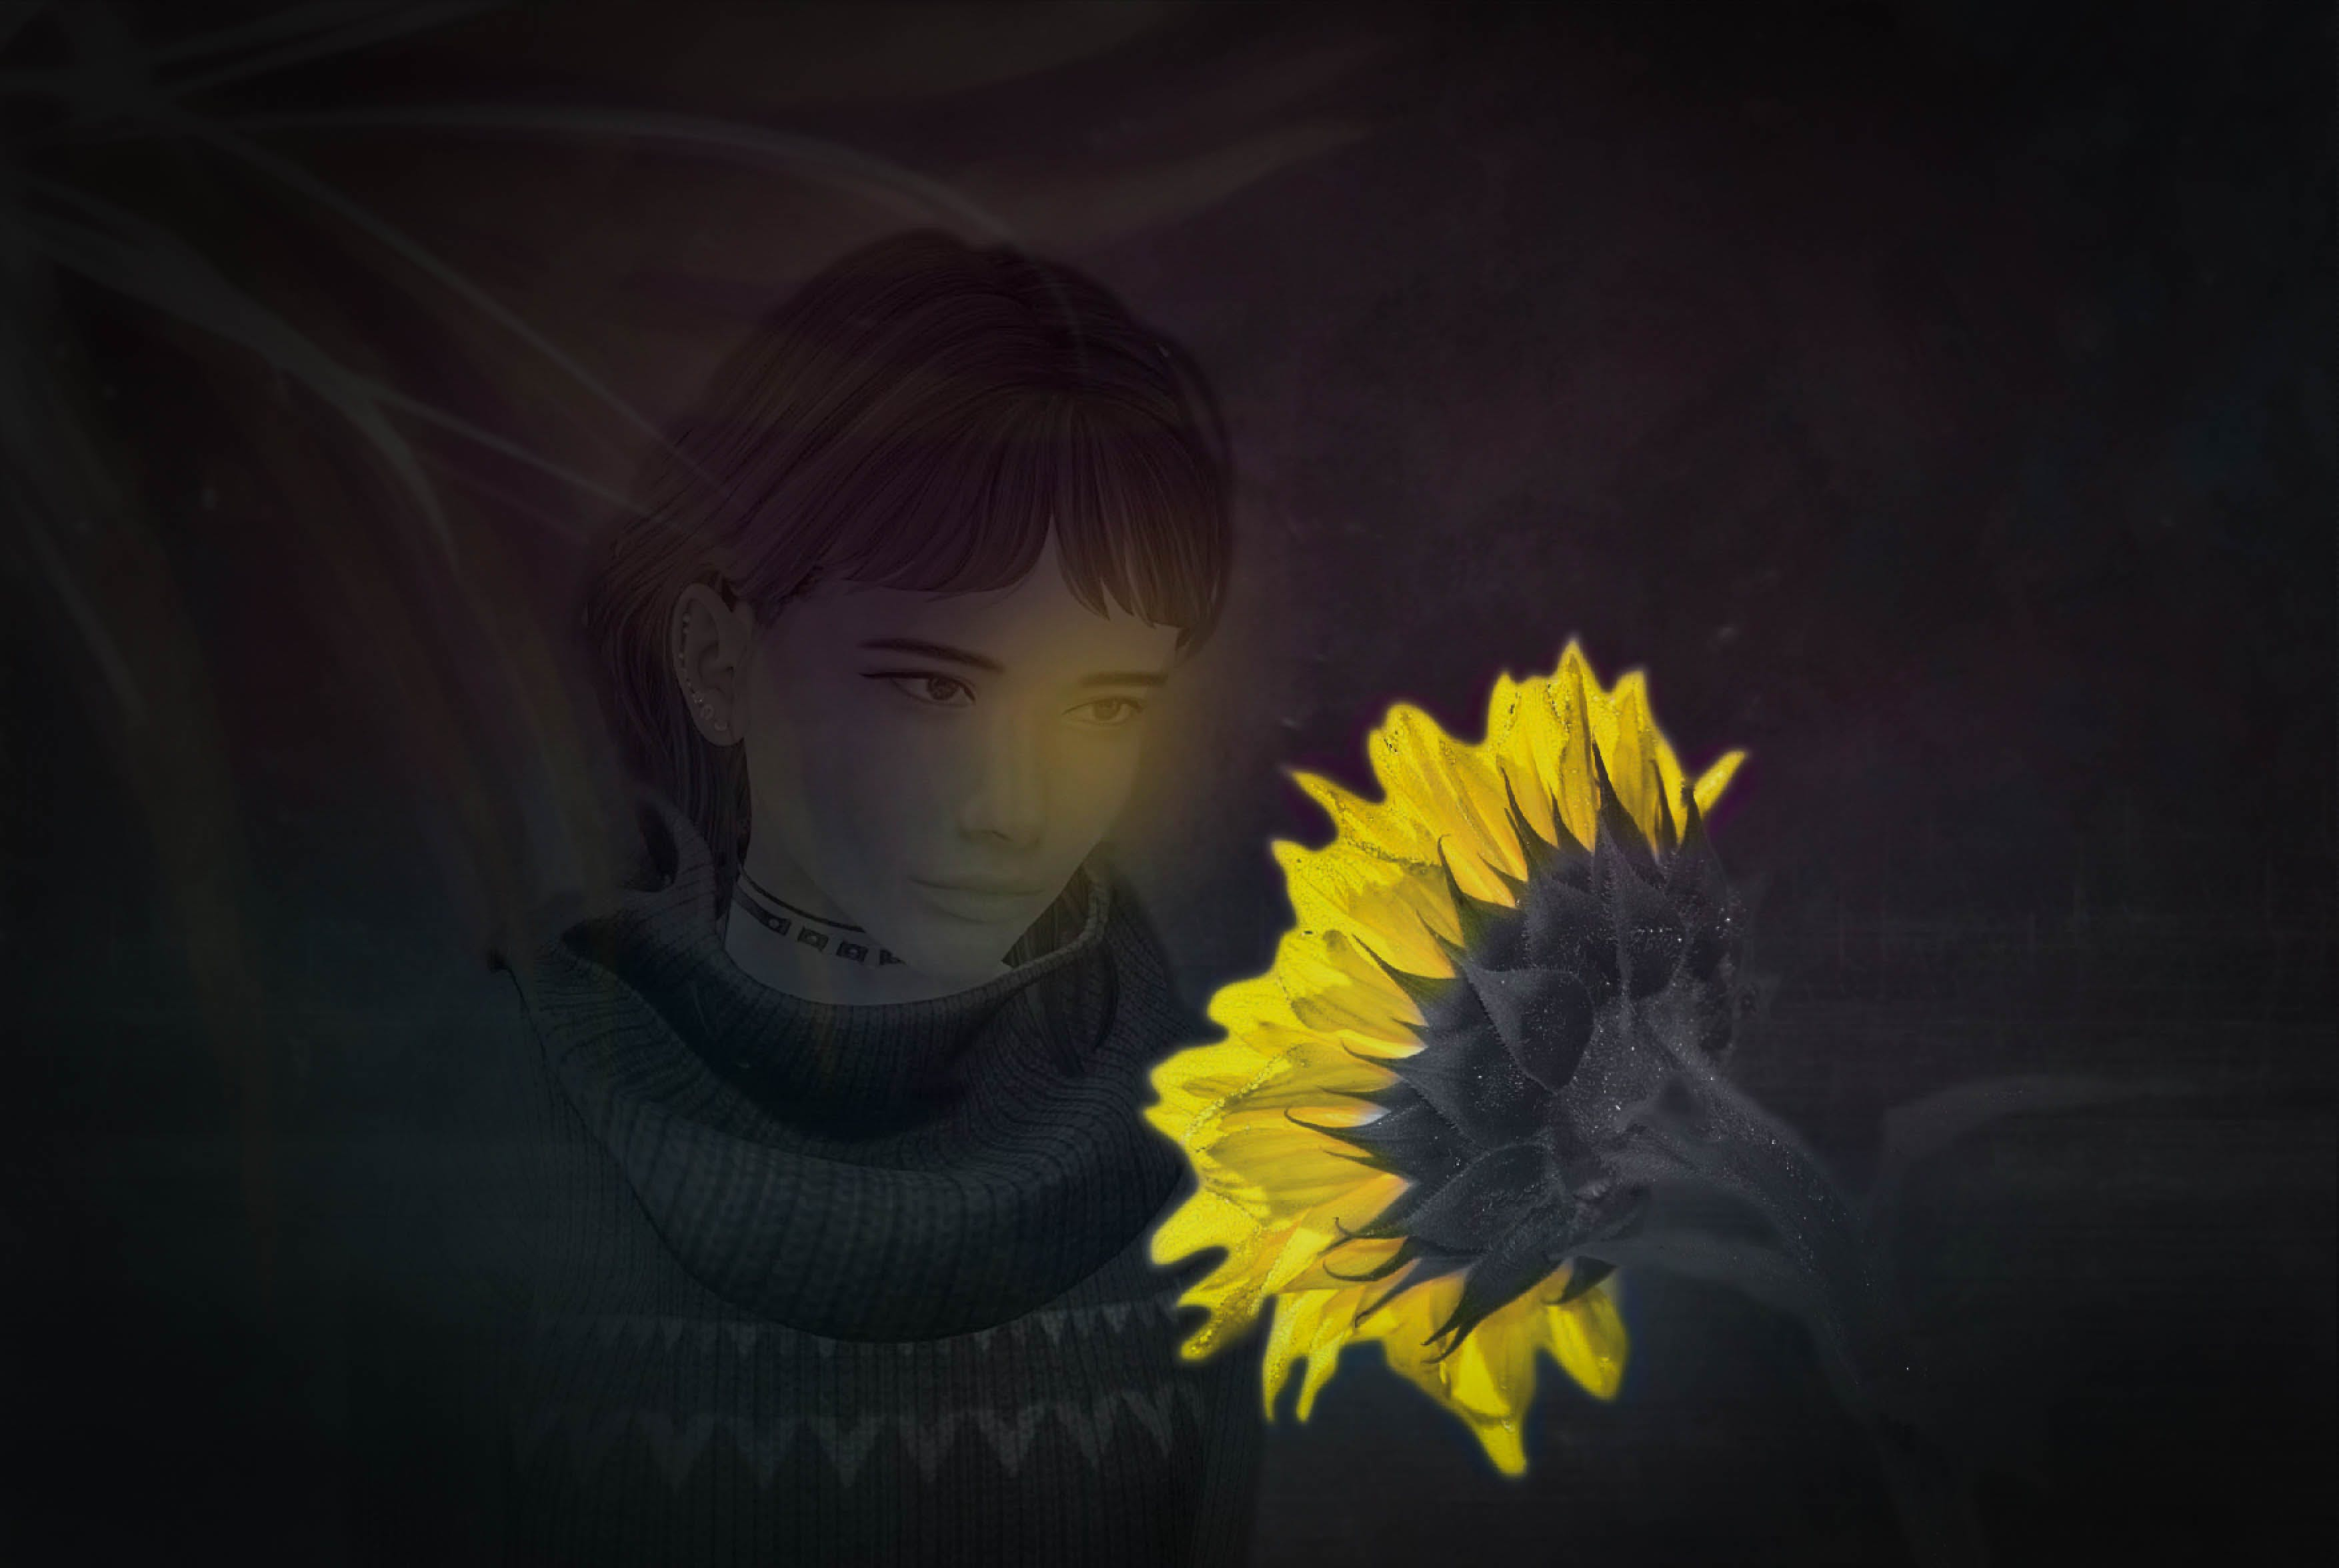 black and white, sunflower, woman